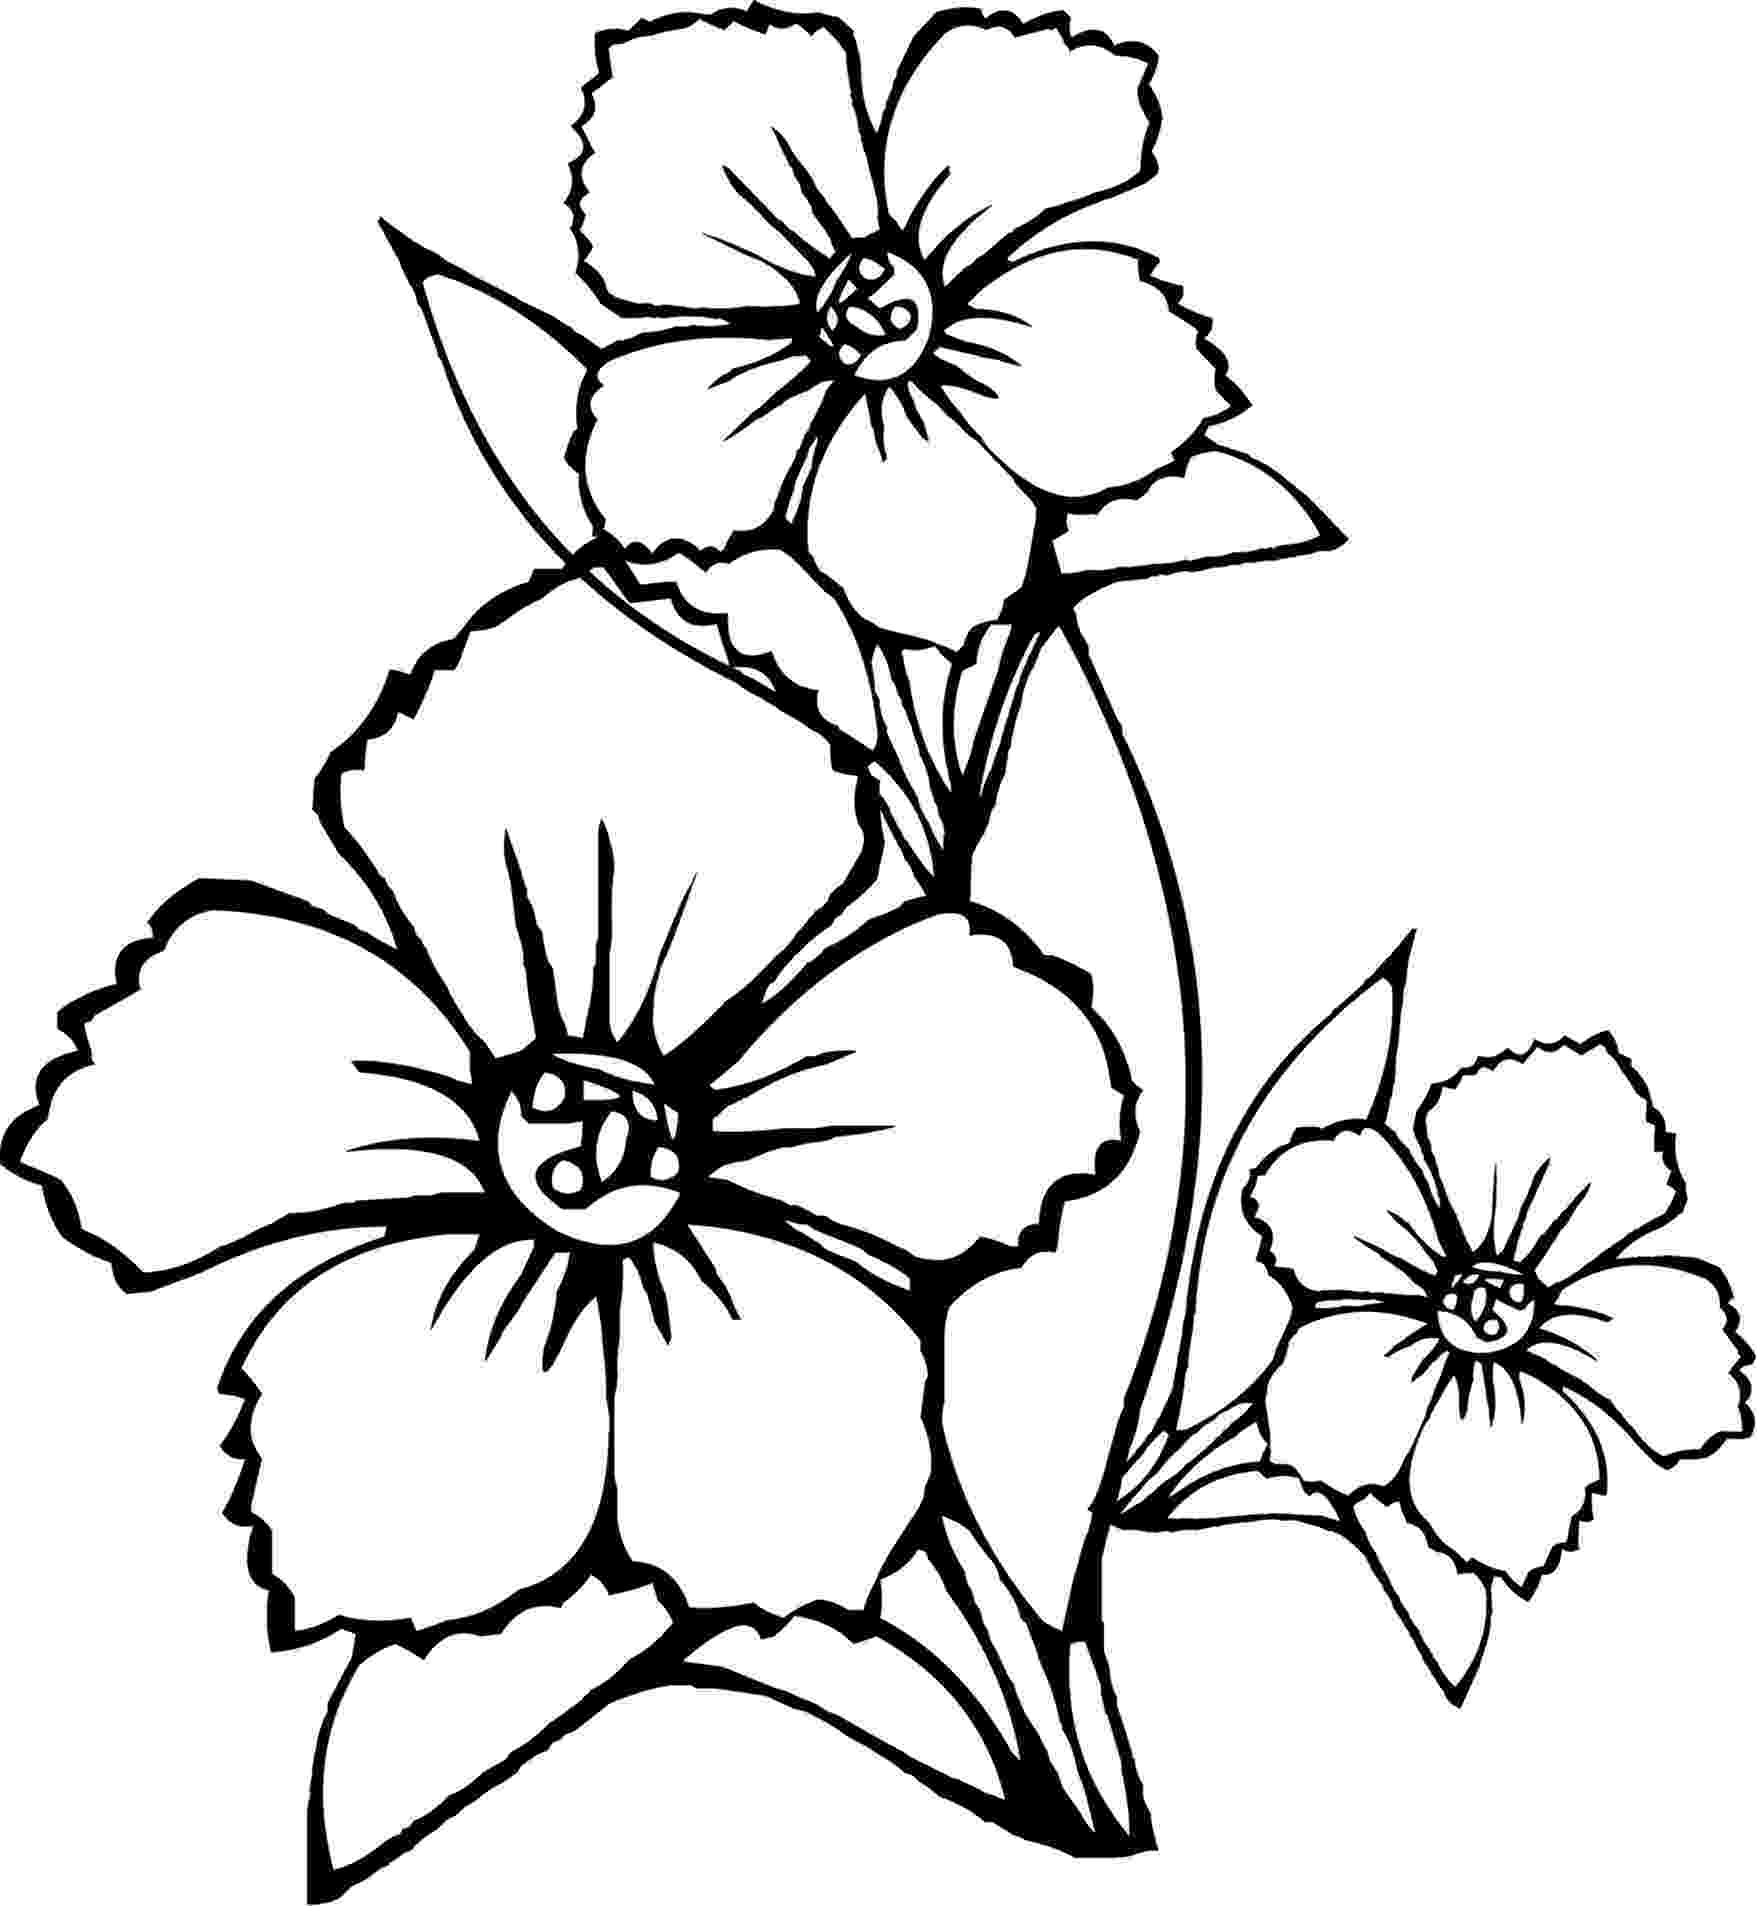 flowers color pages free printable flower coloring pages for kids best flowers color pages 1 1